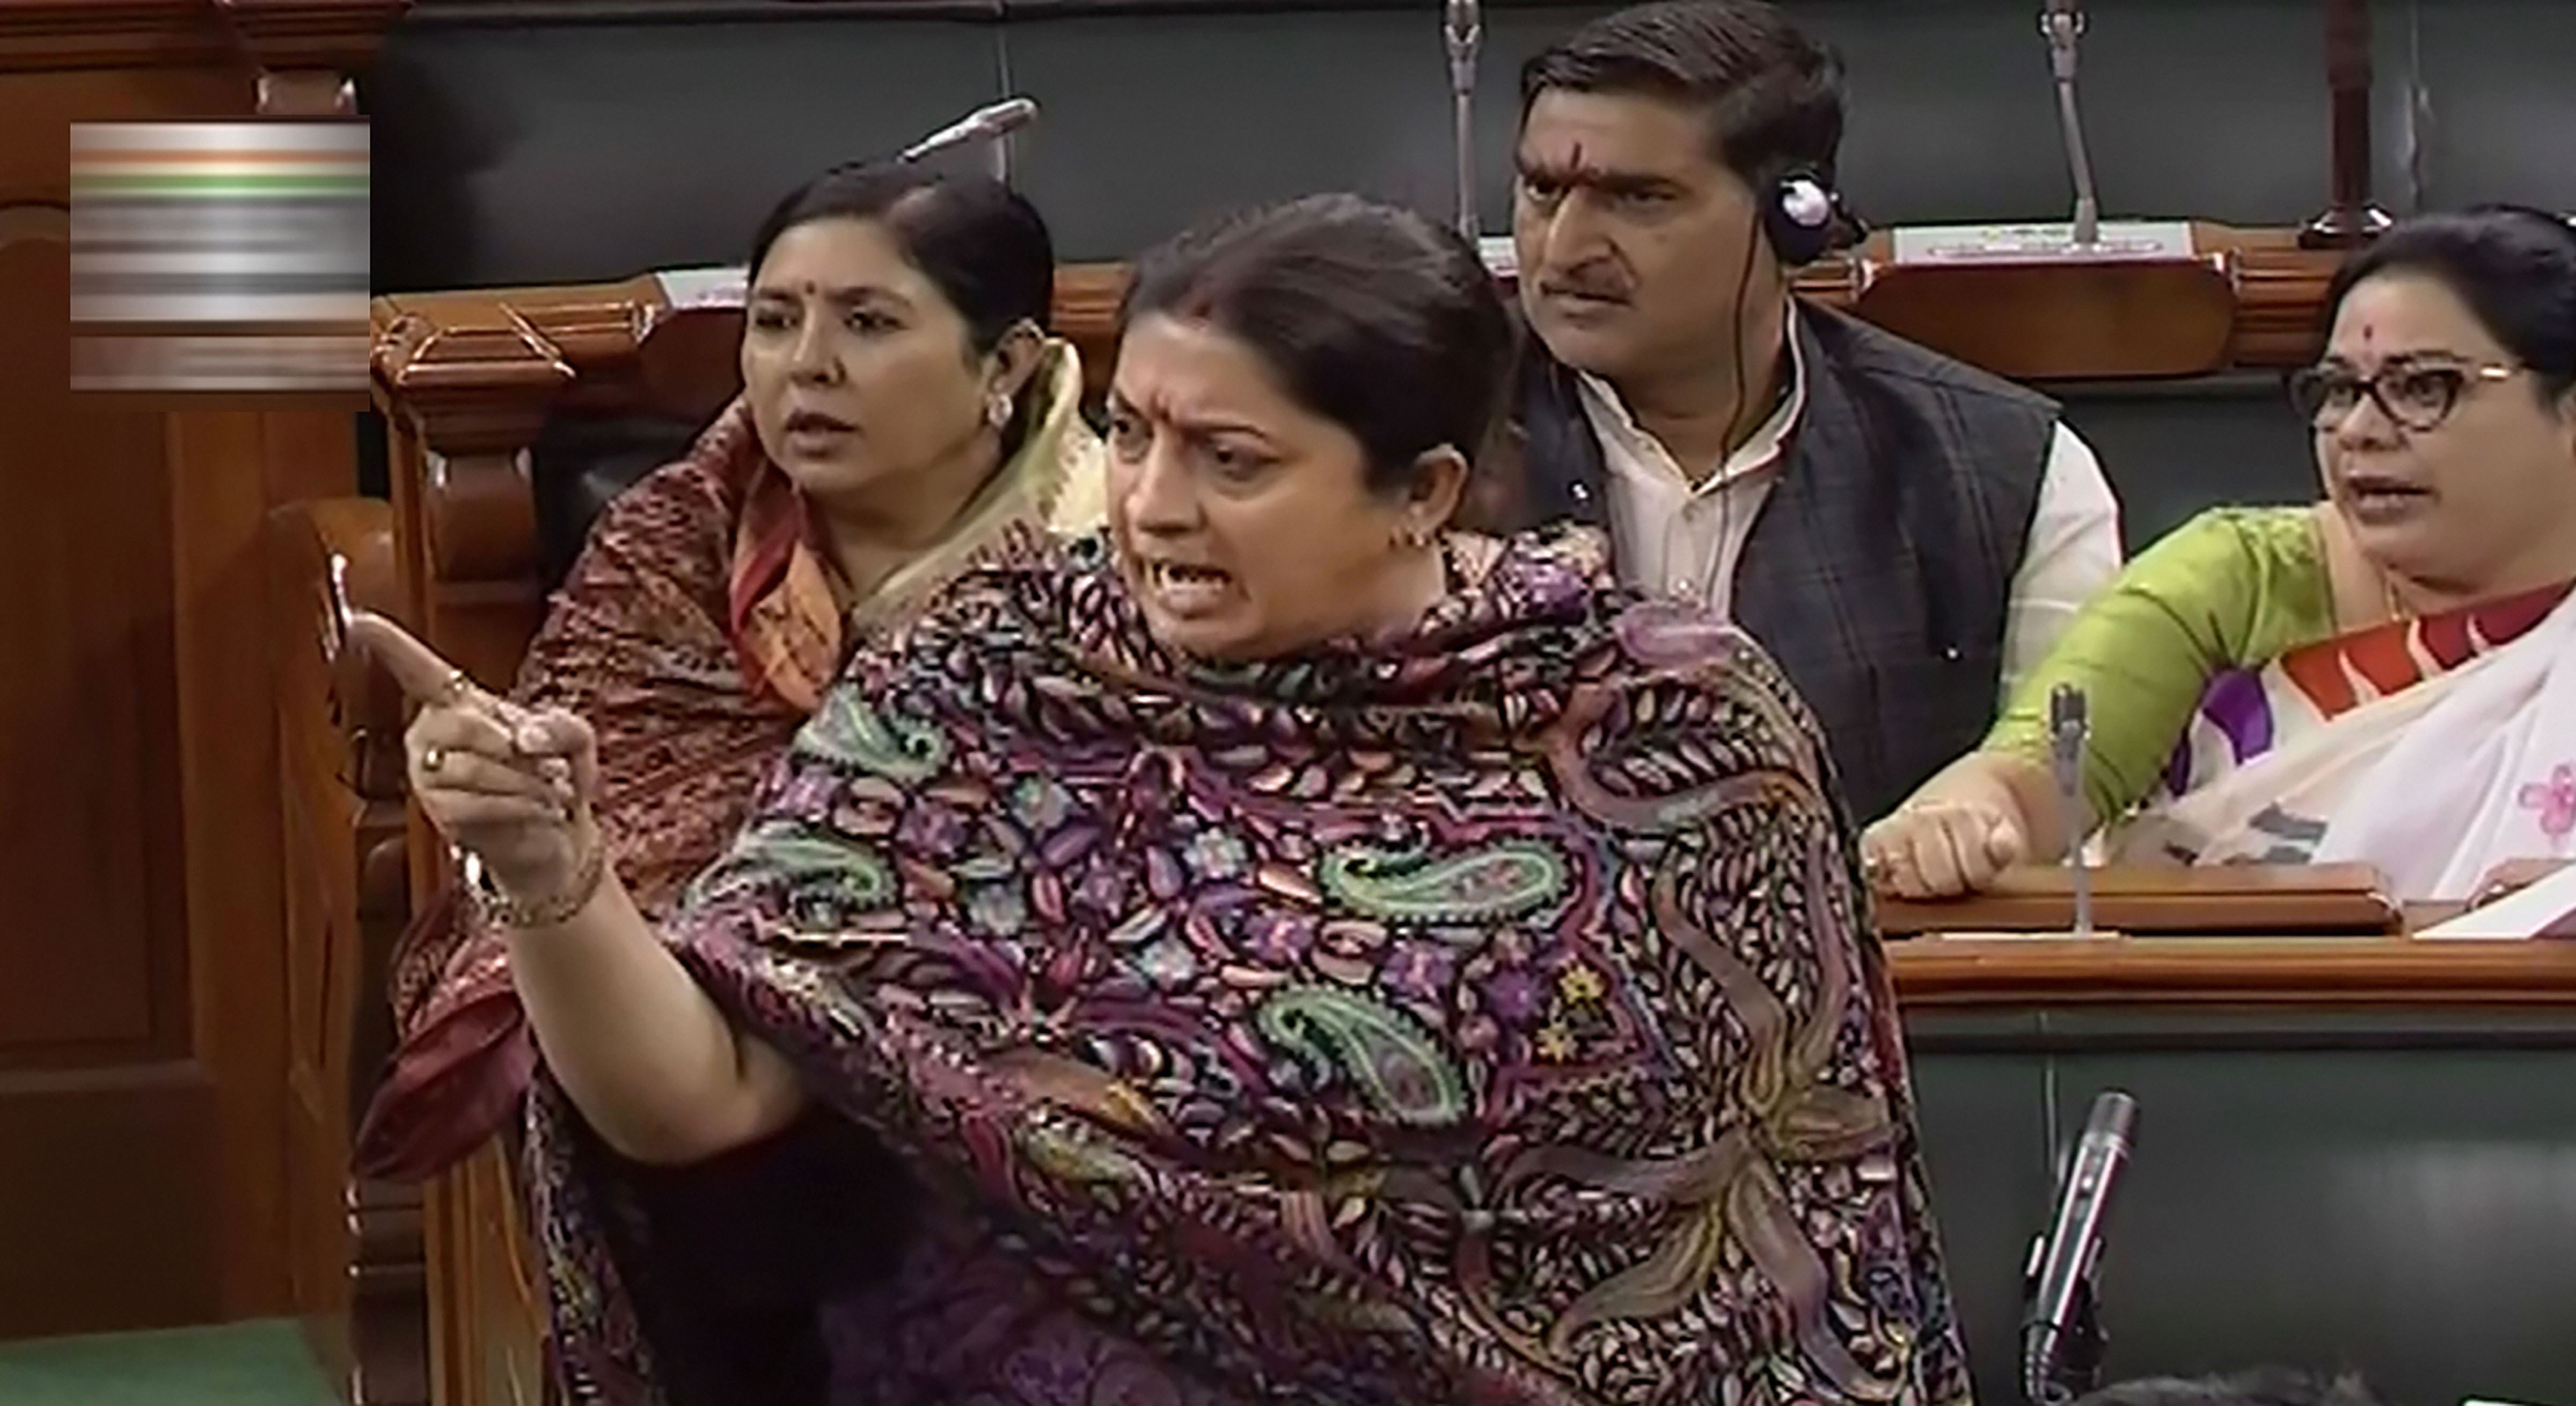 Union woman and child welfare minister Smriti Irani speaks in the Lok Sabha during the winter session of Parliament, in New Delhi, Friday, December 6, 2019.